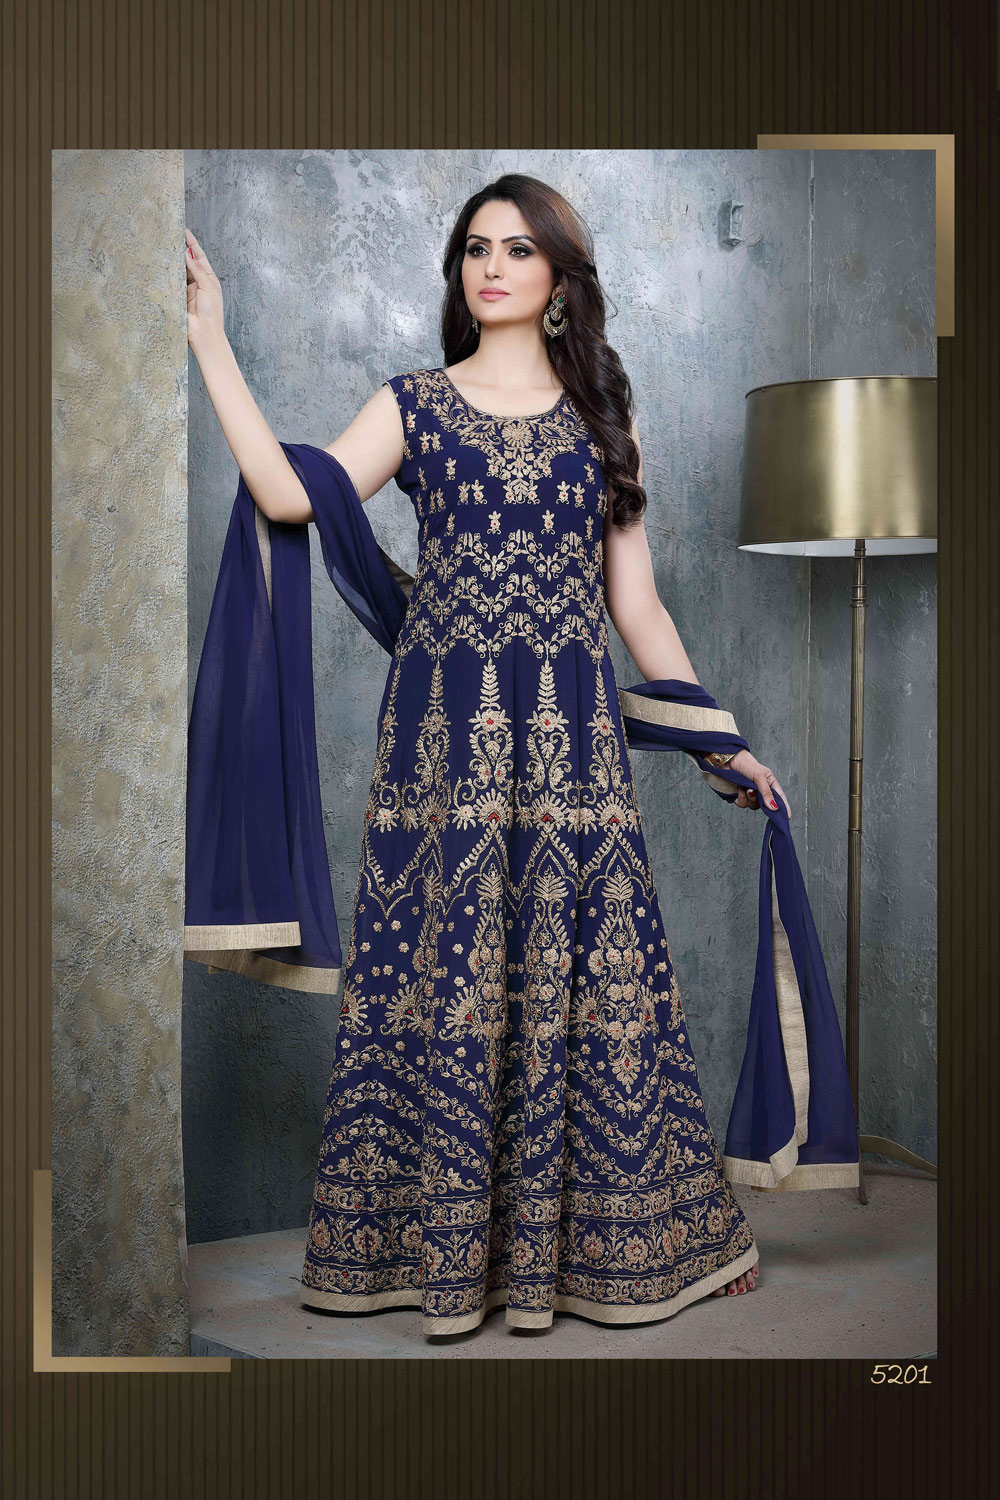 Classy midnight blue Anarkali with magnificent embroidery